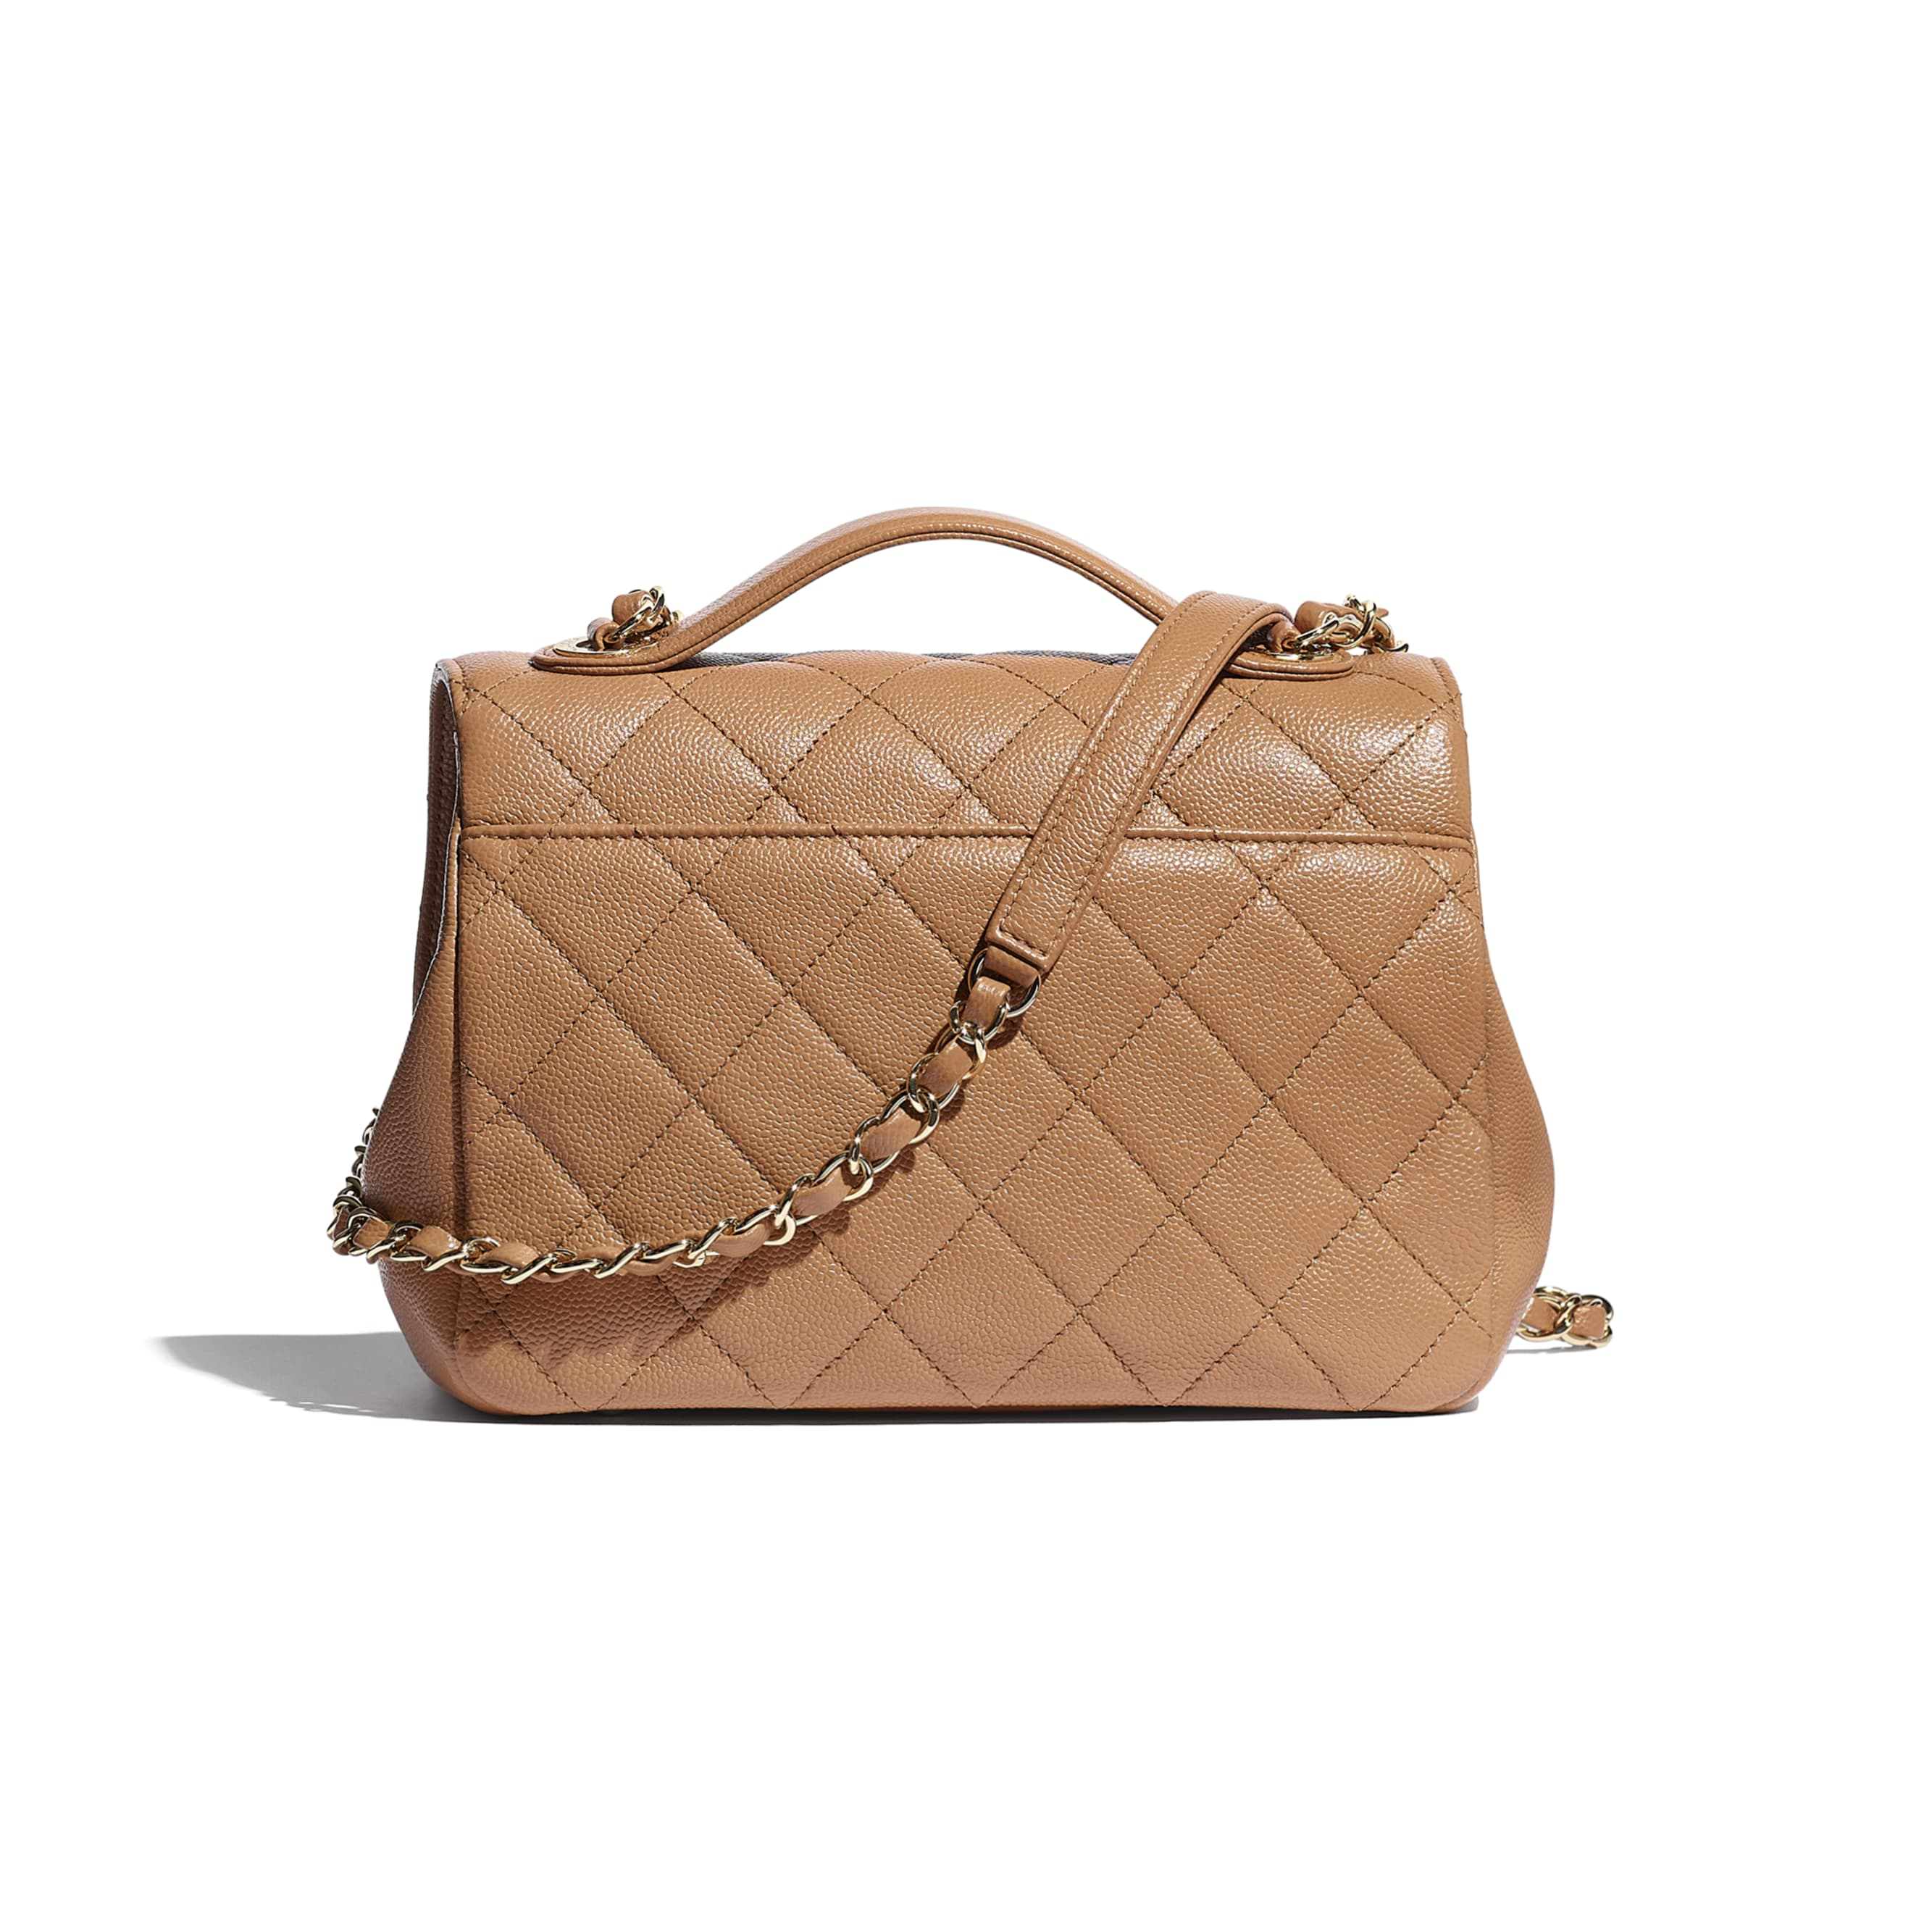 Small Flap Bag With Top Handle - Brown - Grained Calfskin & Gold-Tone Metal - CHANEL - Alternative view - see standard sized version